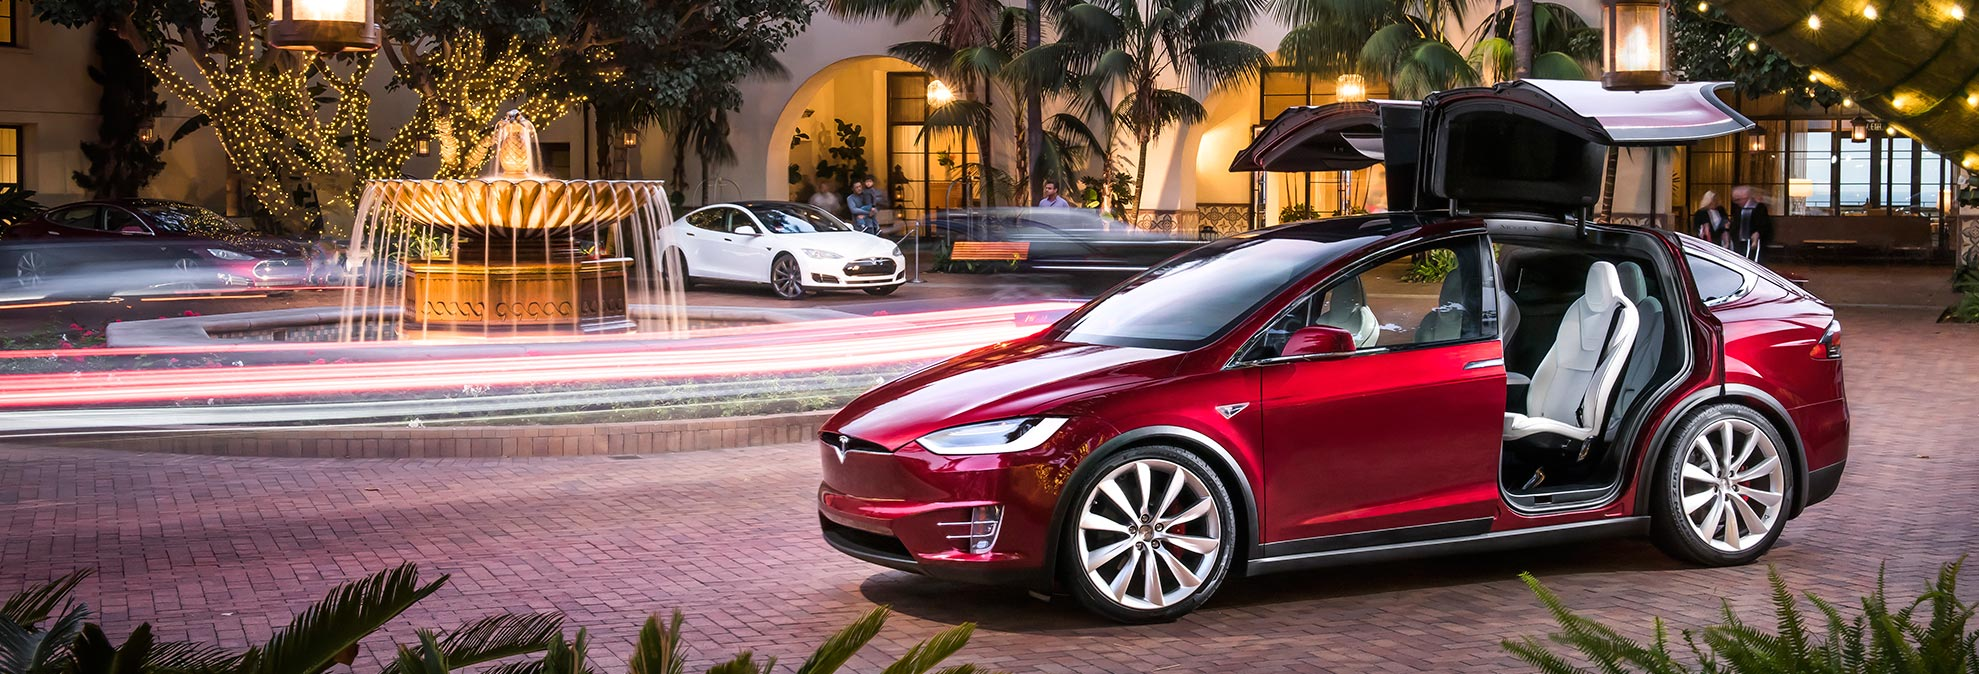 repair garden chairs fishing chair accessories early-build tesla model x suvs face quality issues - consumer reports